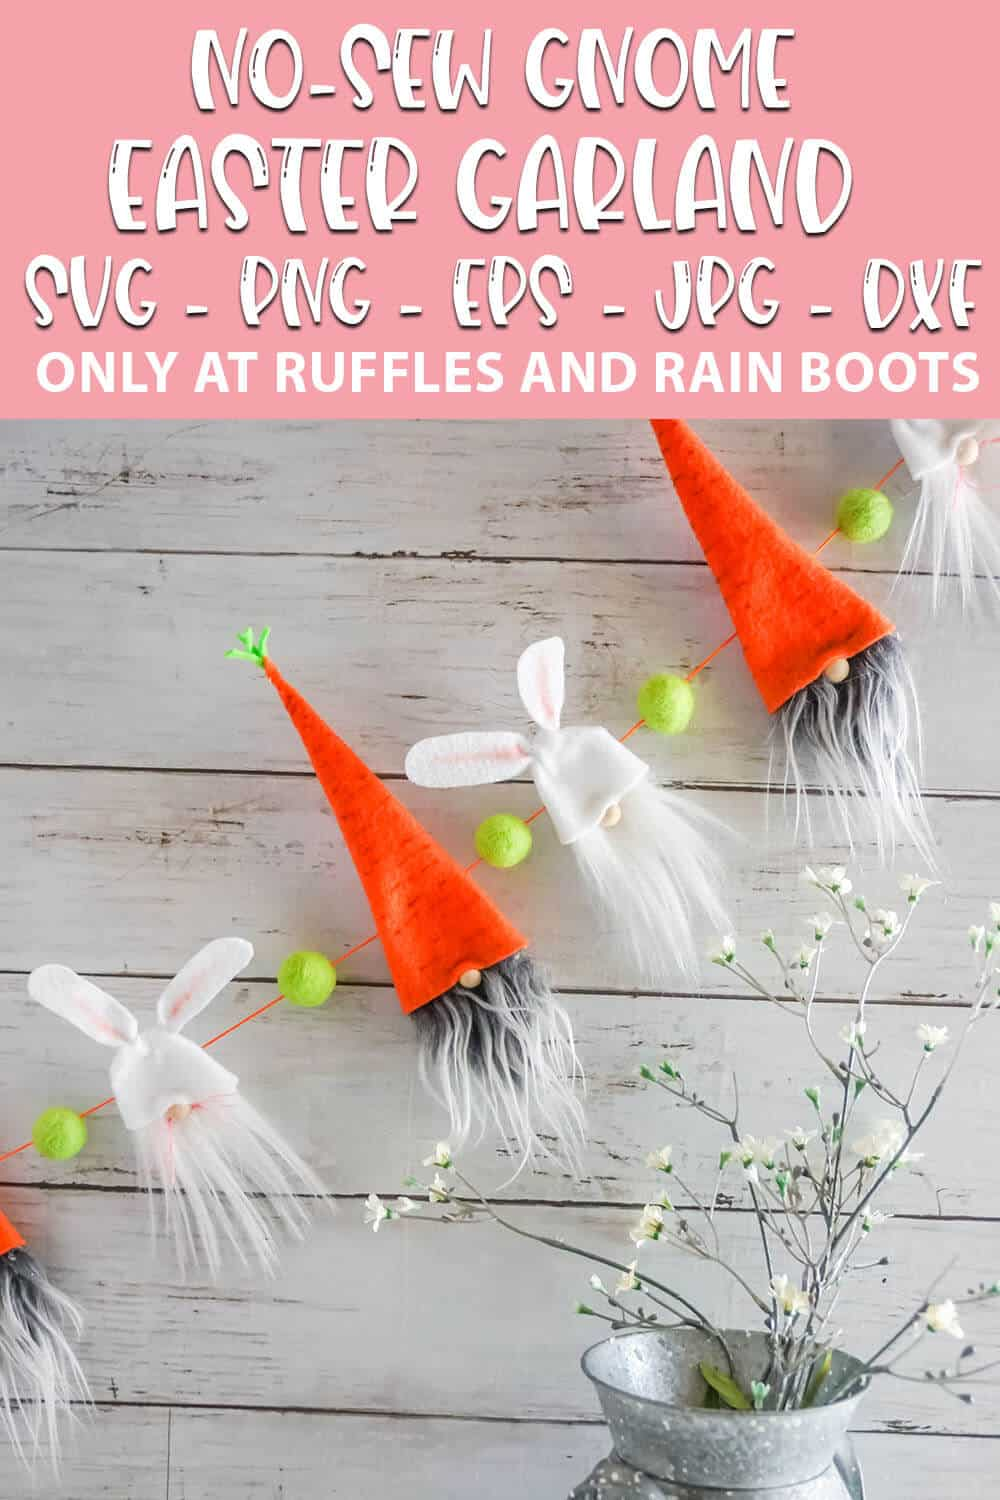 SVG file for cricut or silhouette to make an easter gnome garland with text which reads no-sew gnome easter garland svg png eps jpg dxf